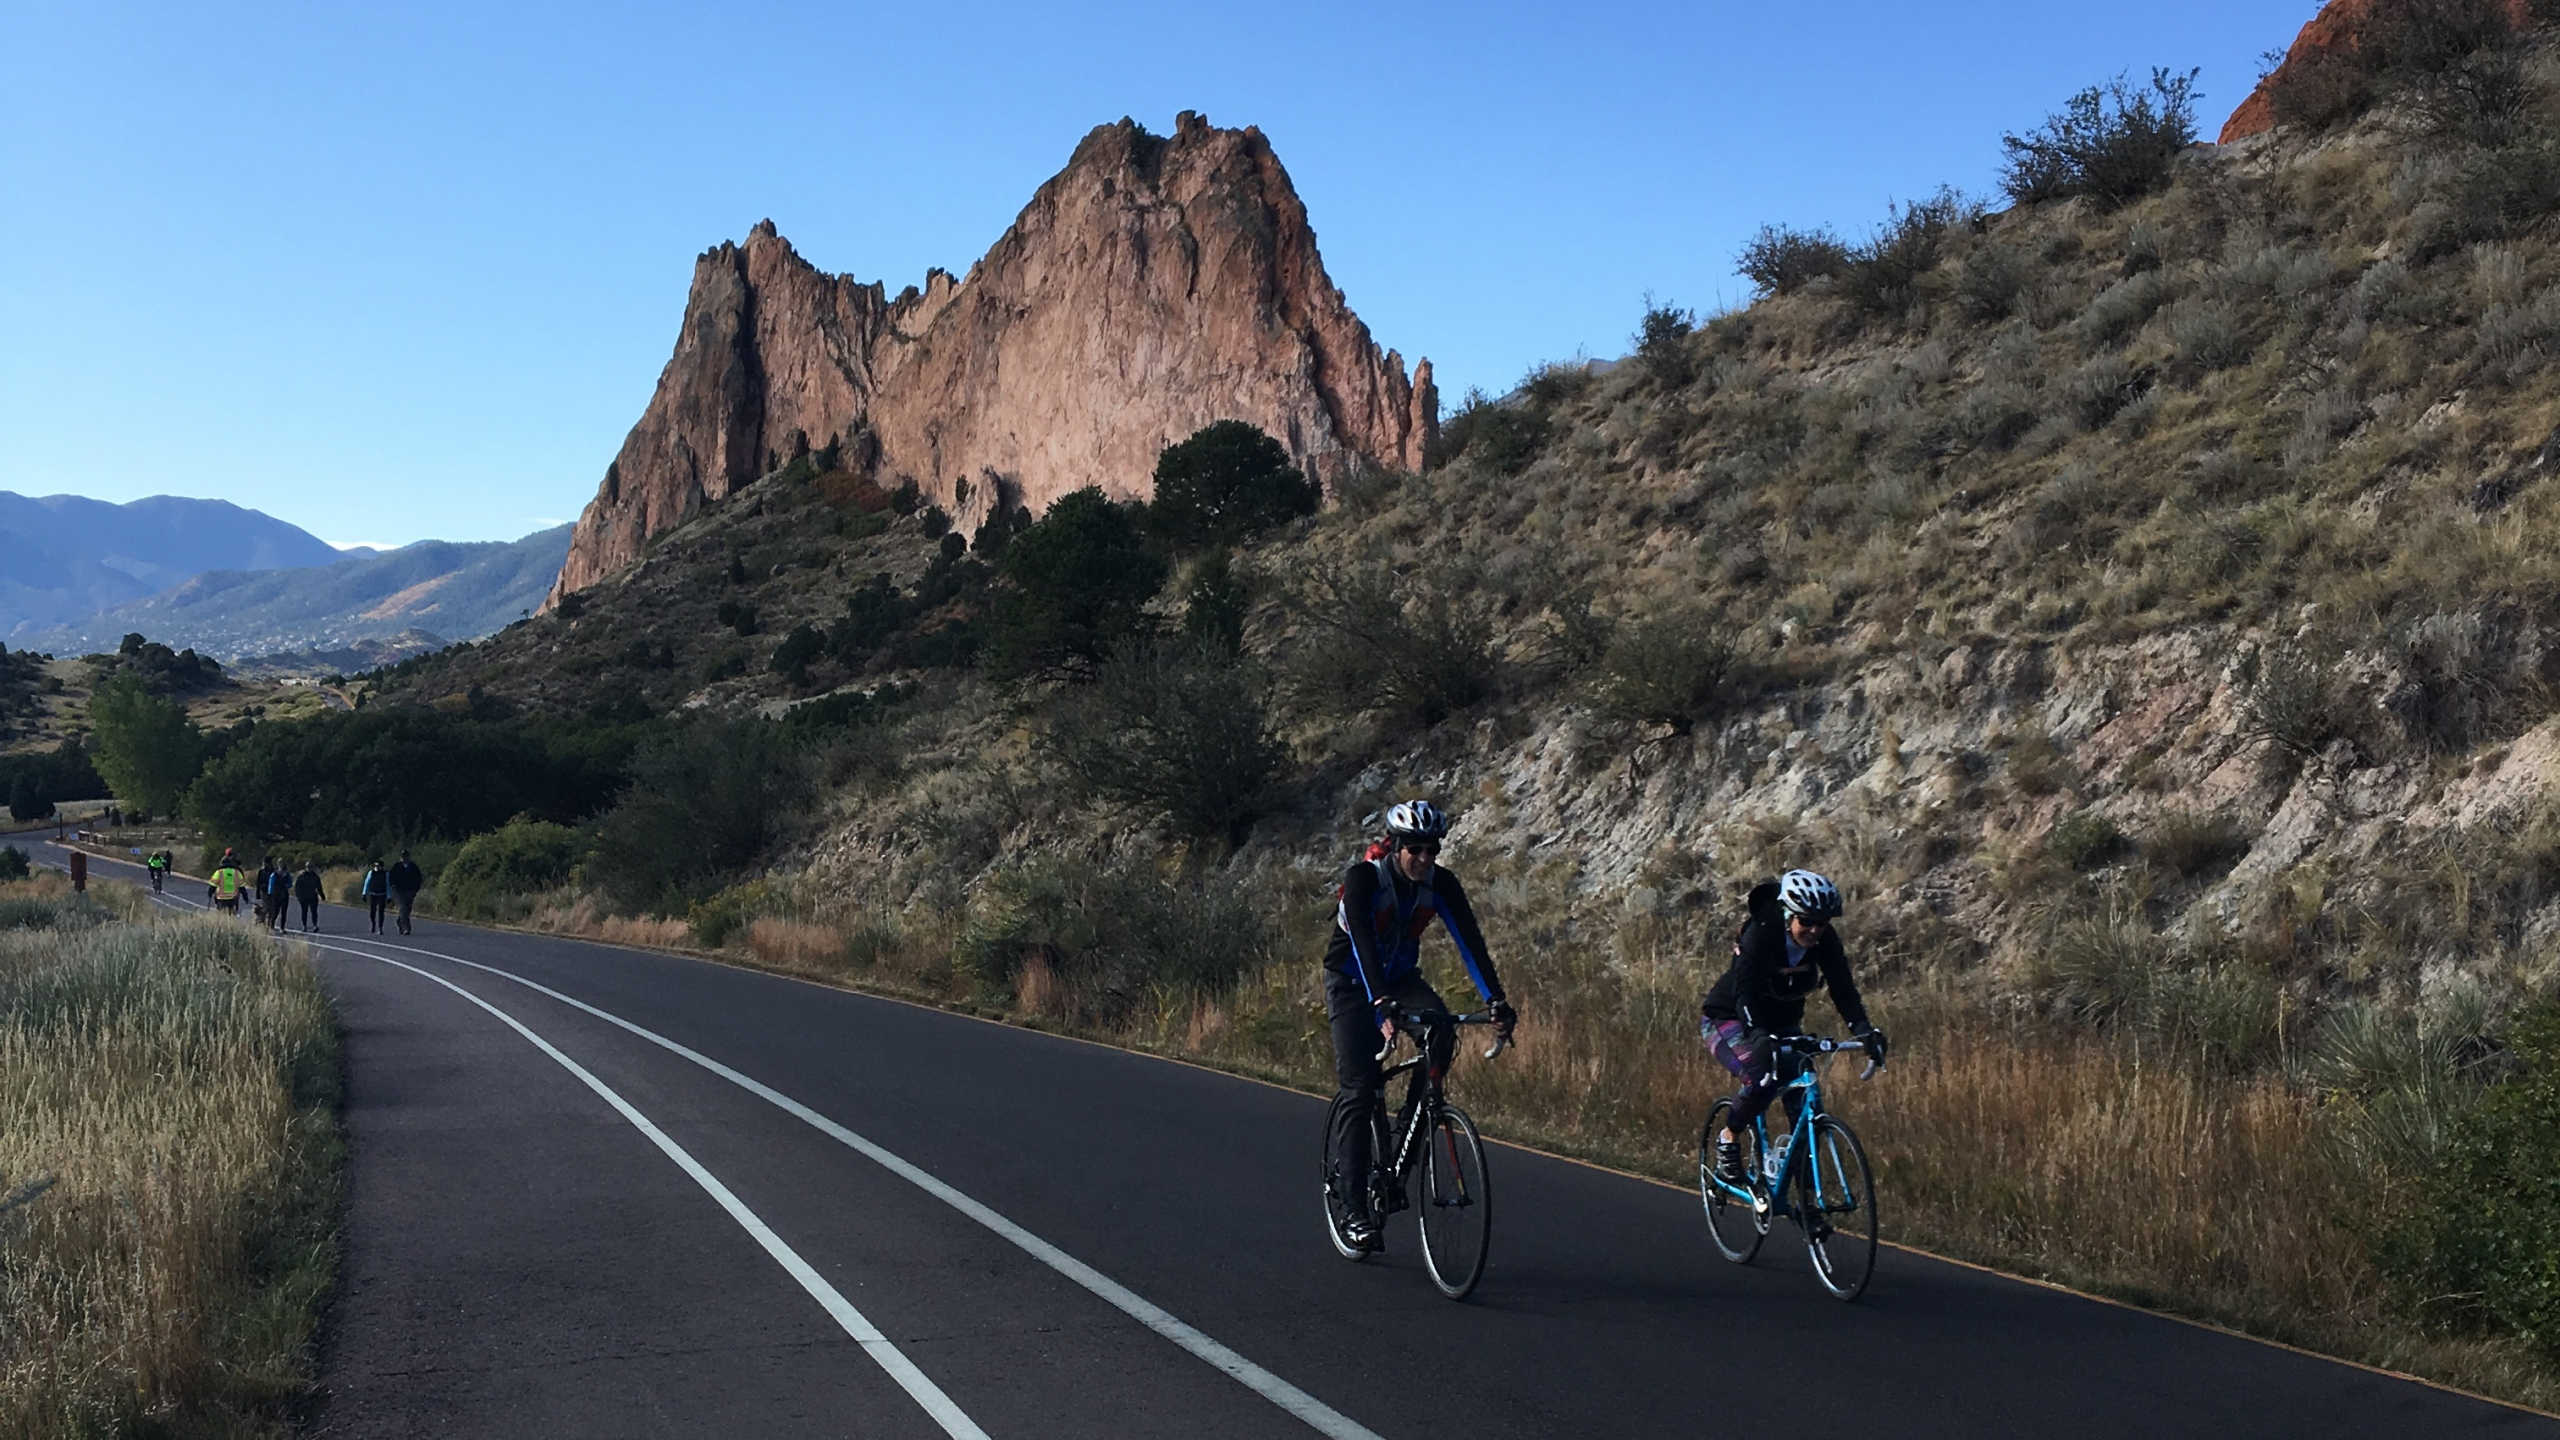 A past Motorless Morning event at Garden of the Gods. / Courtesy City of Colorado Springs